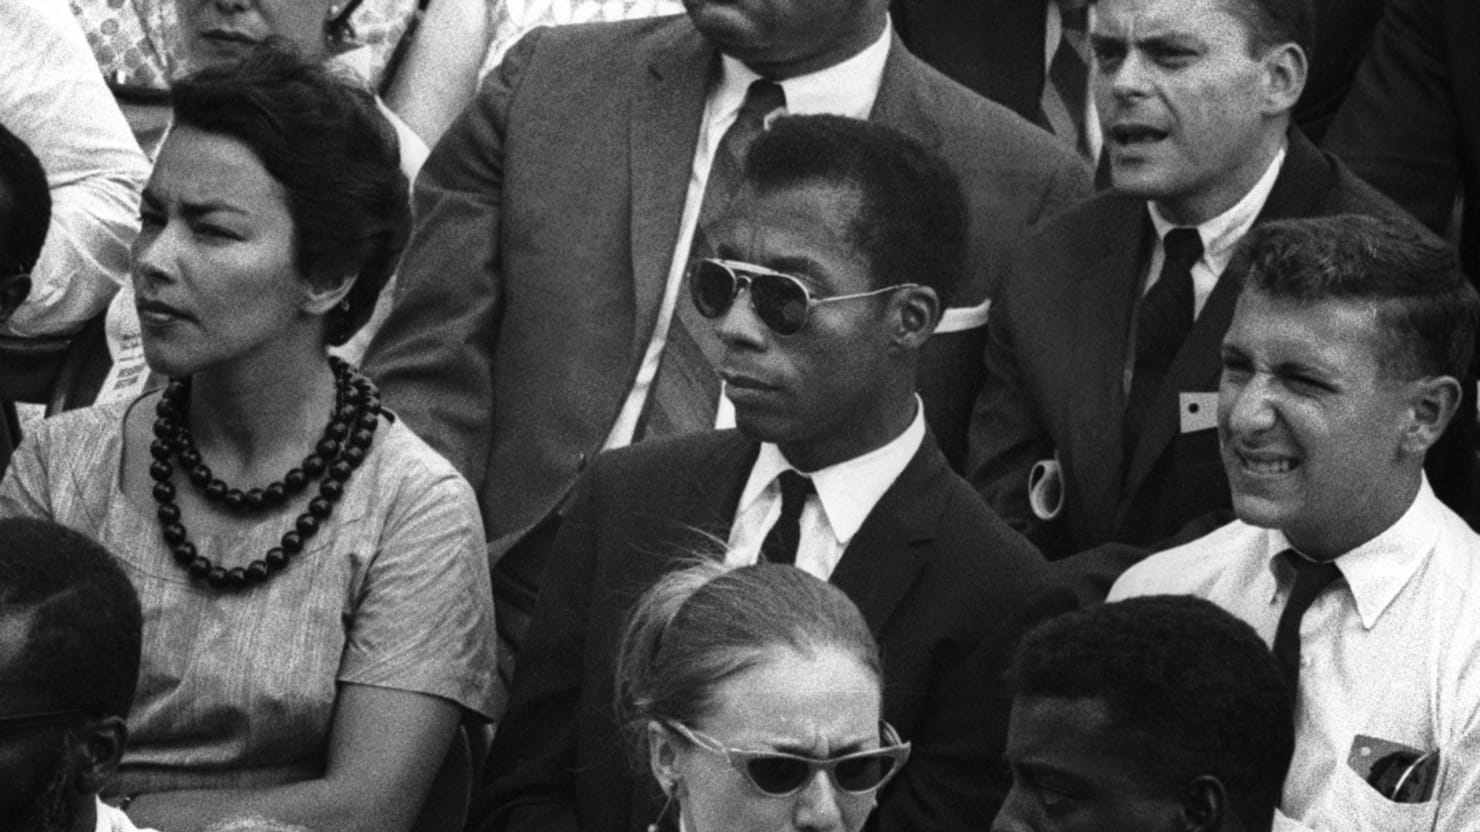 'I Am Not Your Negro': How Hollywood Failed Black America